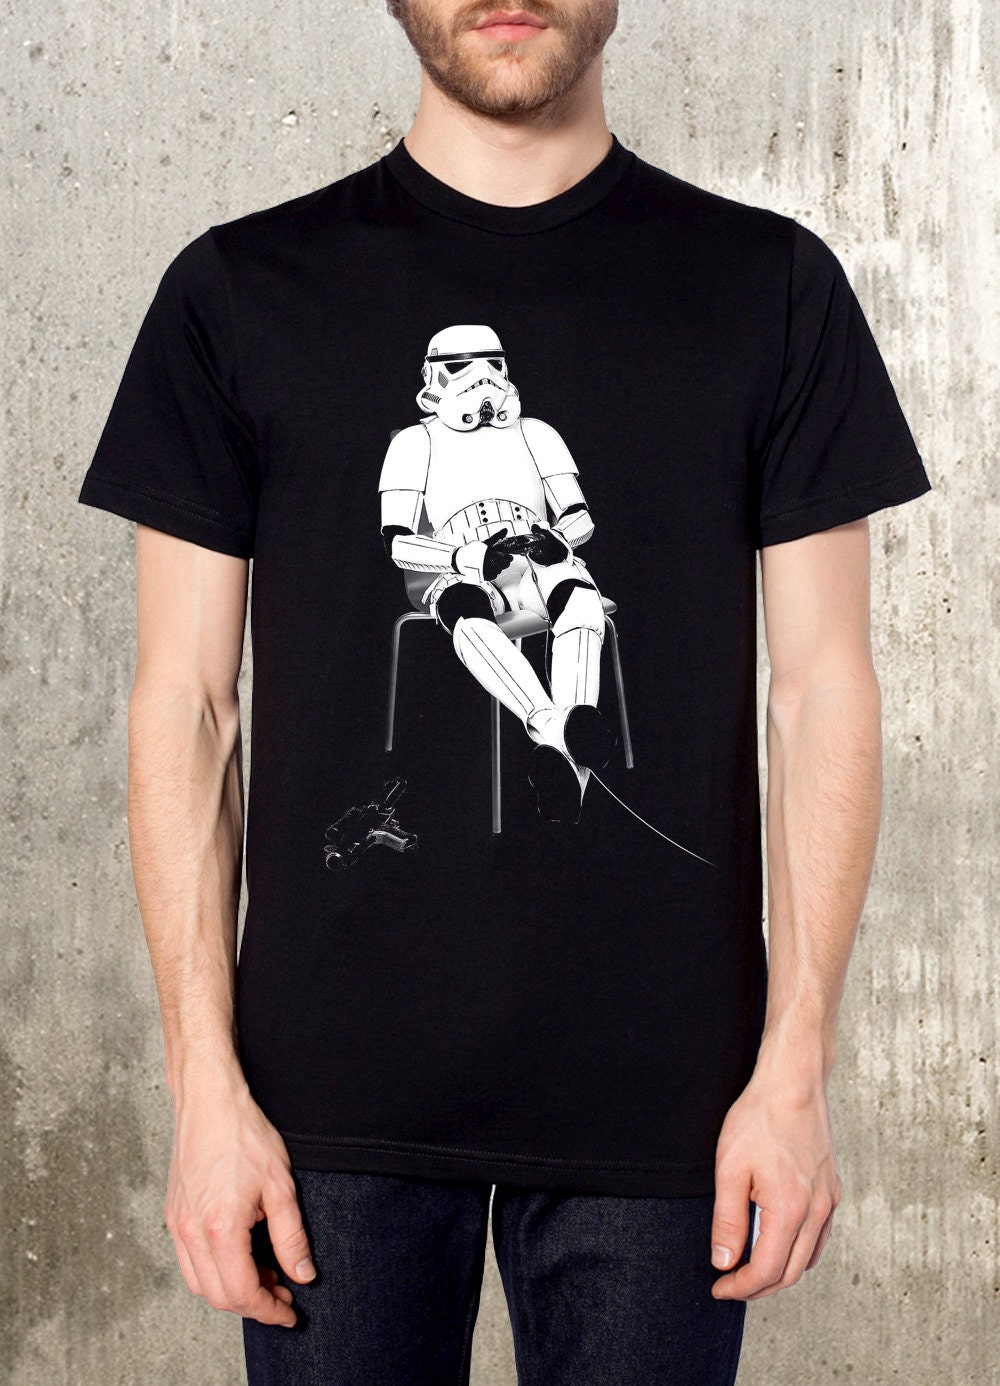 Storm Trooper Playing Nintendo - Men's Screen Printed T-Shirt - Available in S, M, L, XL and XXL - CrawlspaceStudios